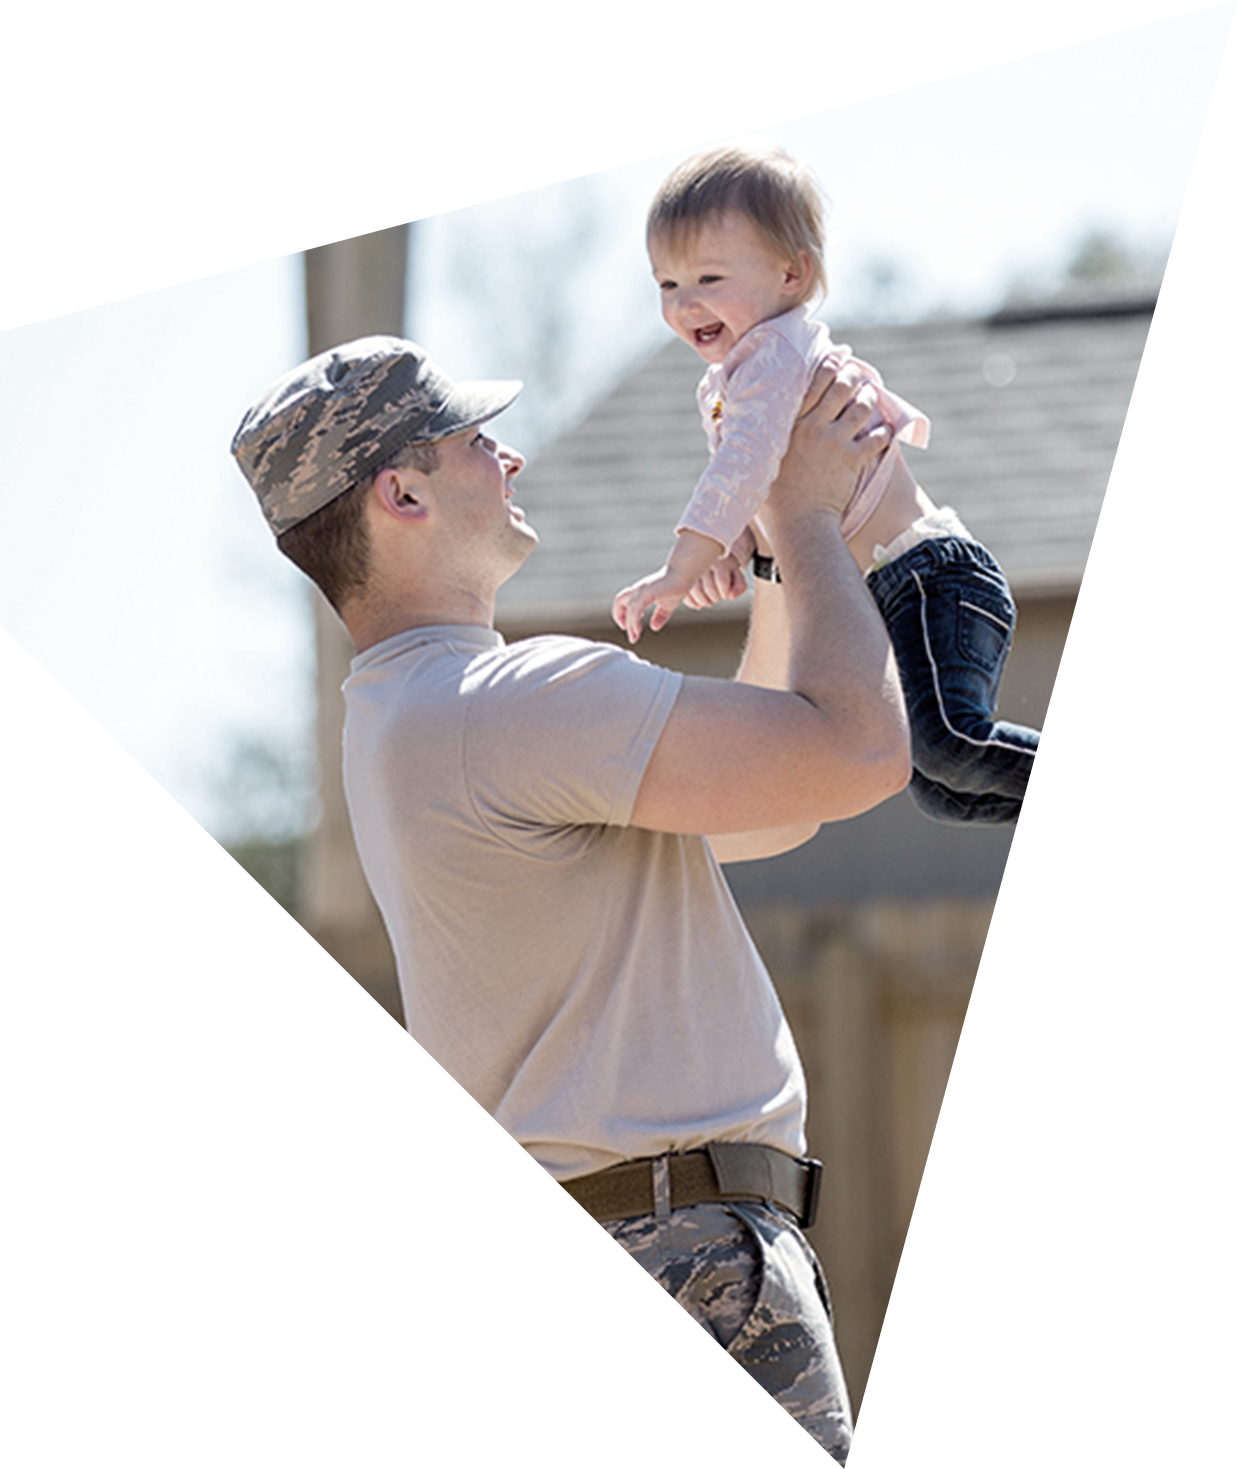 https://www.veteranstrongusa.com/wp-content/uploads/2020/05/img-experience_FAM.png